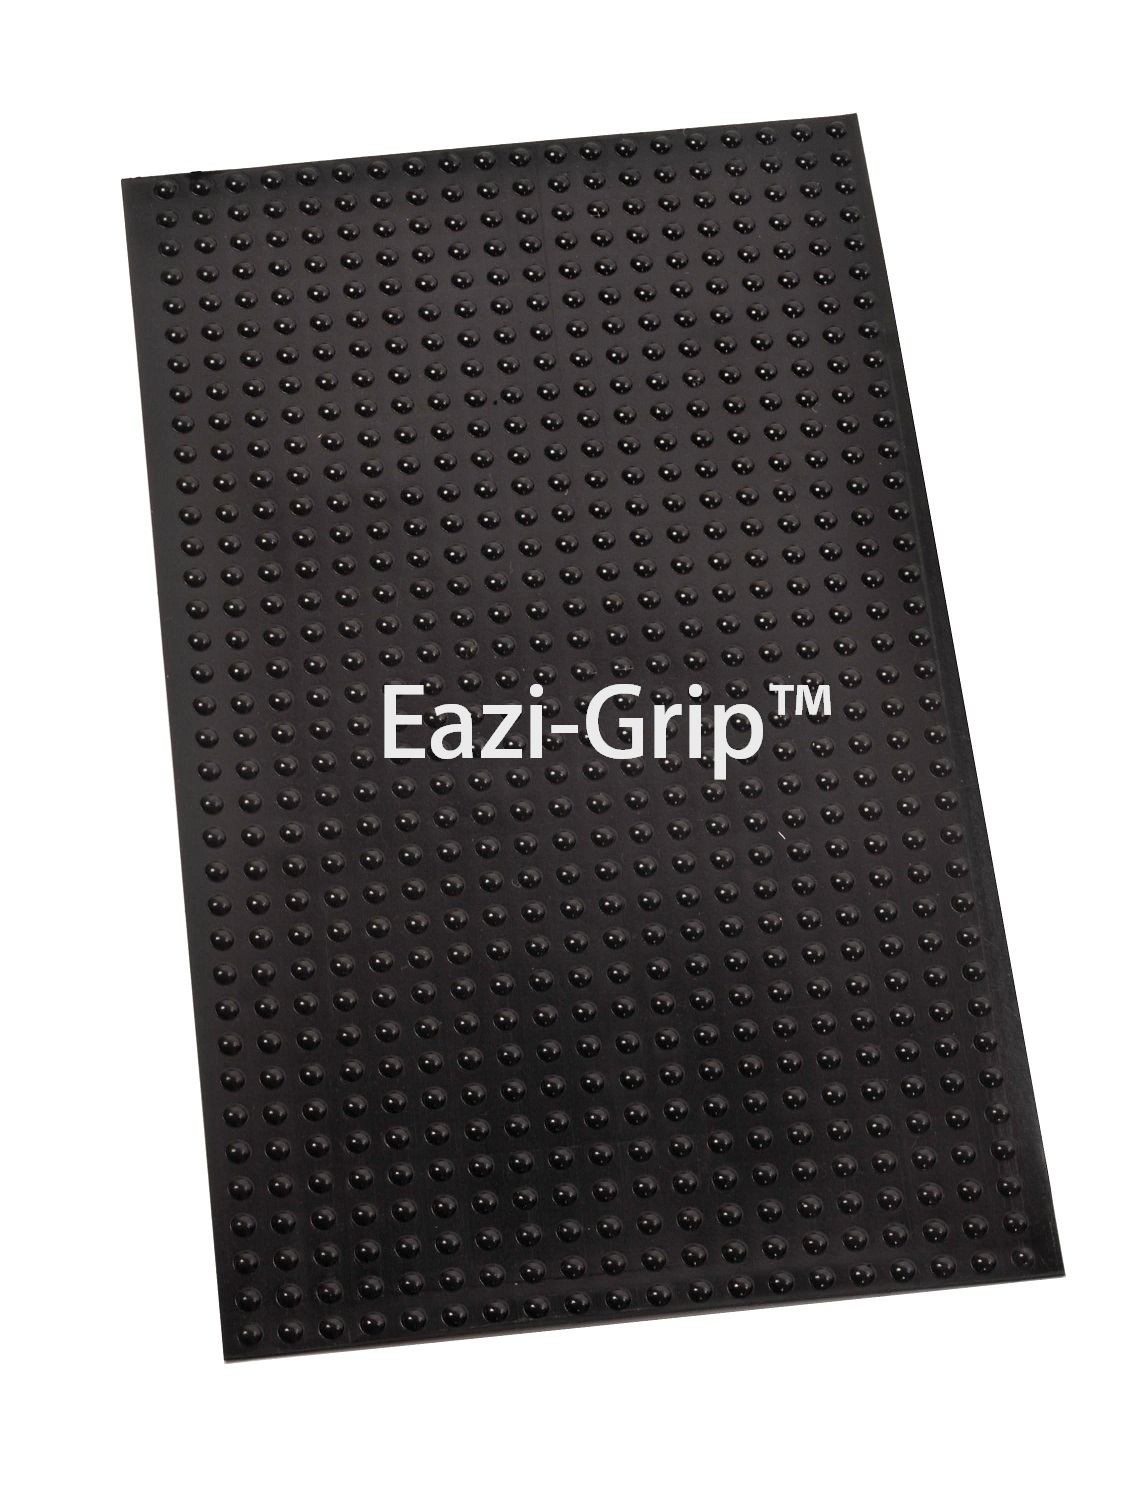 Eazi-Grip Evo Universal Cut To Fit Sheets (2)/Black/305mm X 155mm - #EVOSHEETSBL 2 x Tank Grip Sheets EVO Black (305mmx155mm)